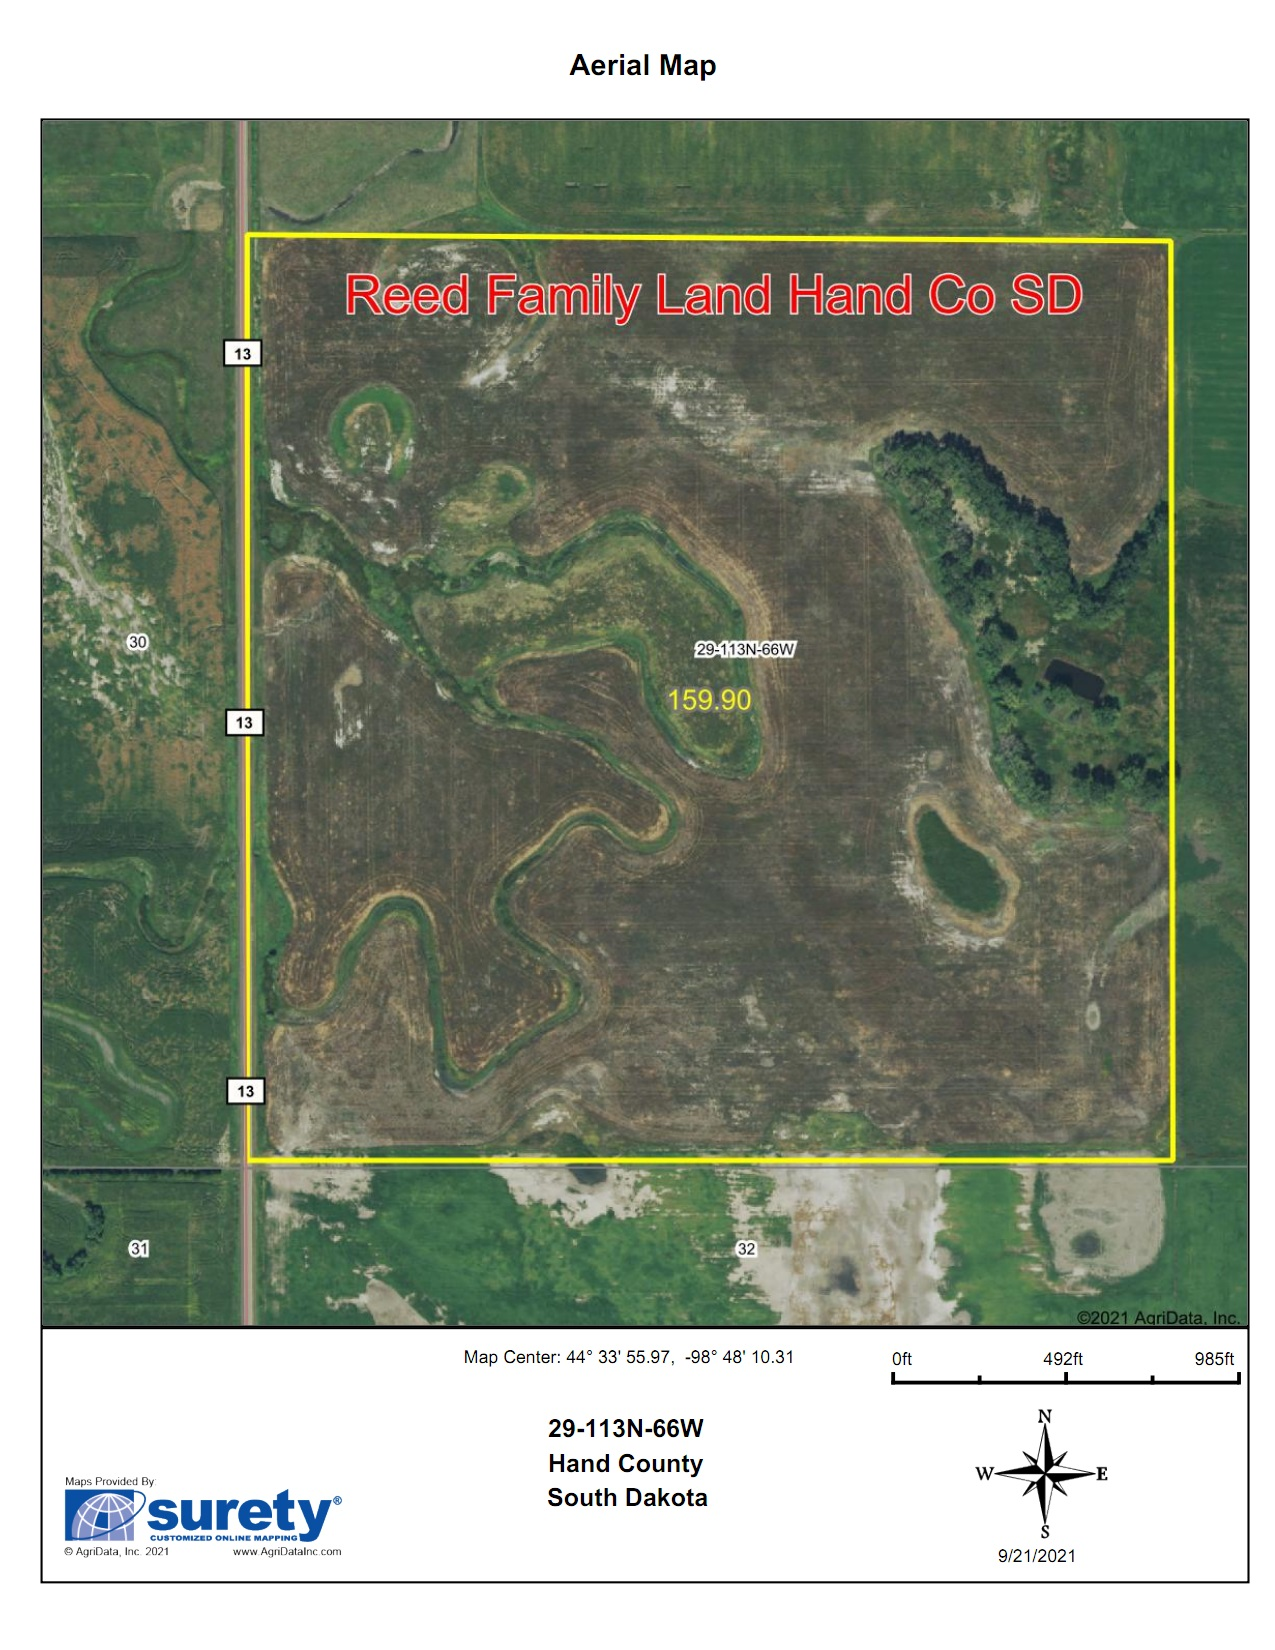 10/28 11am 158.96 Acres Hand County Land Auction